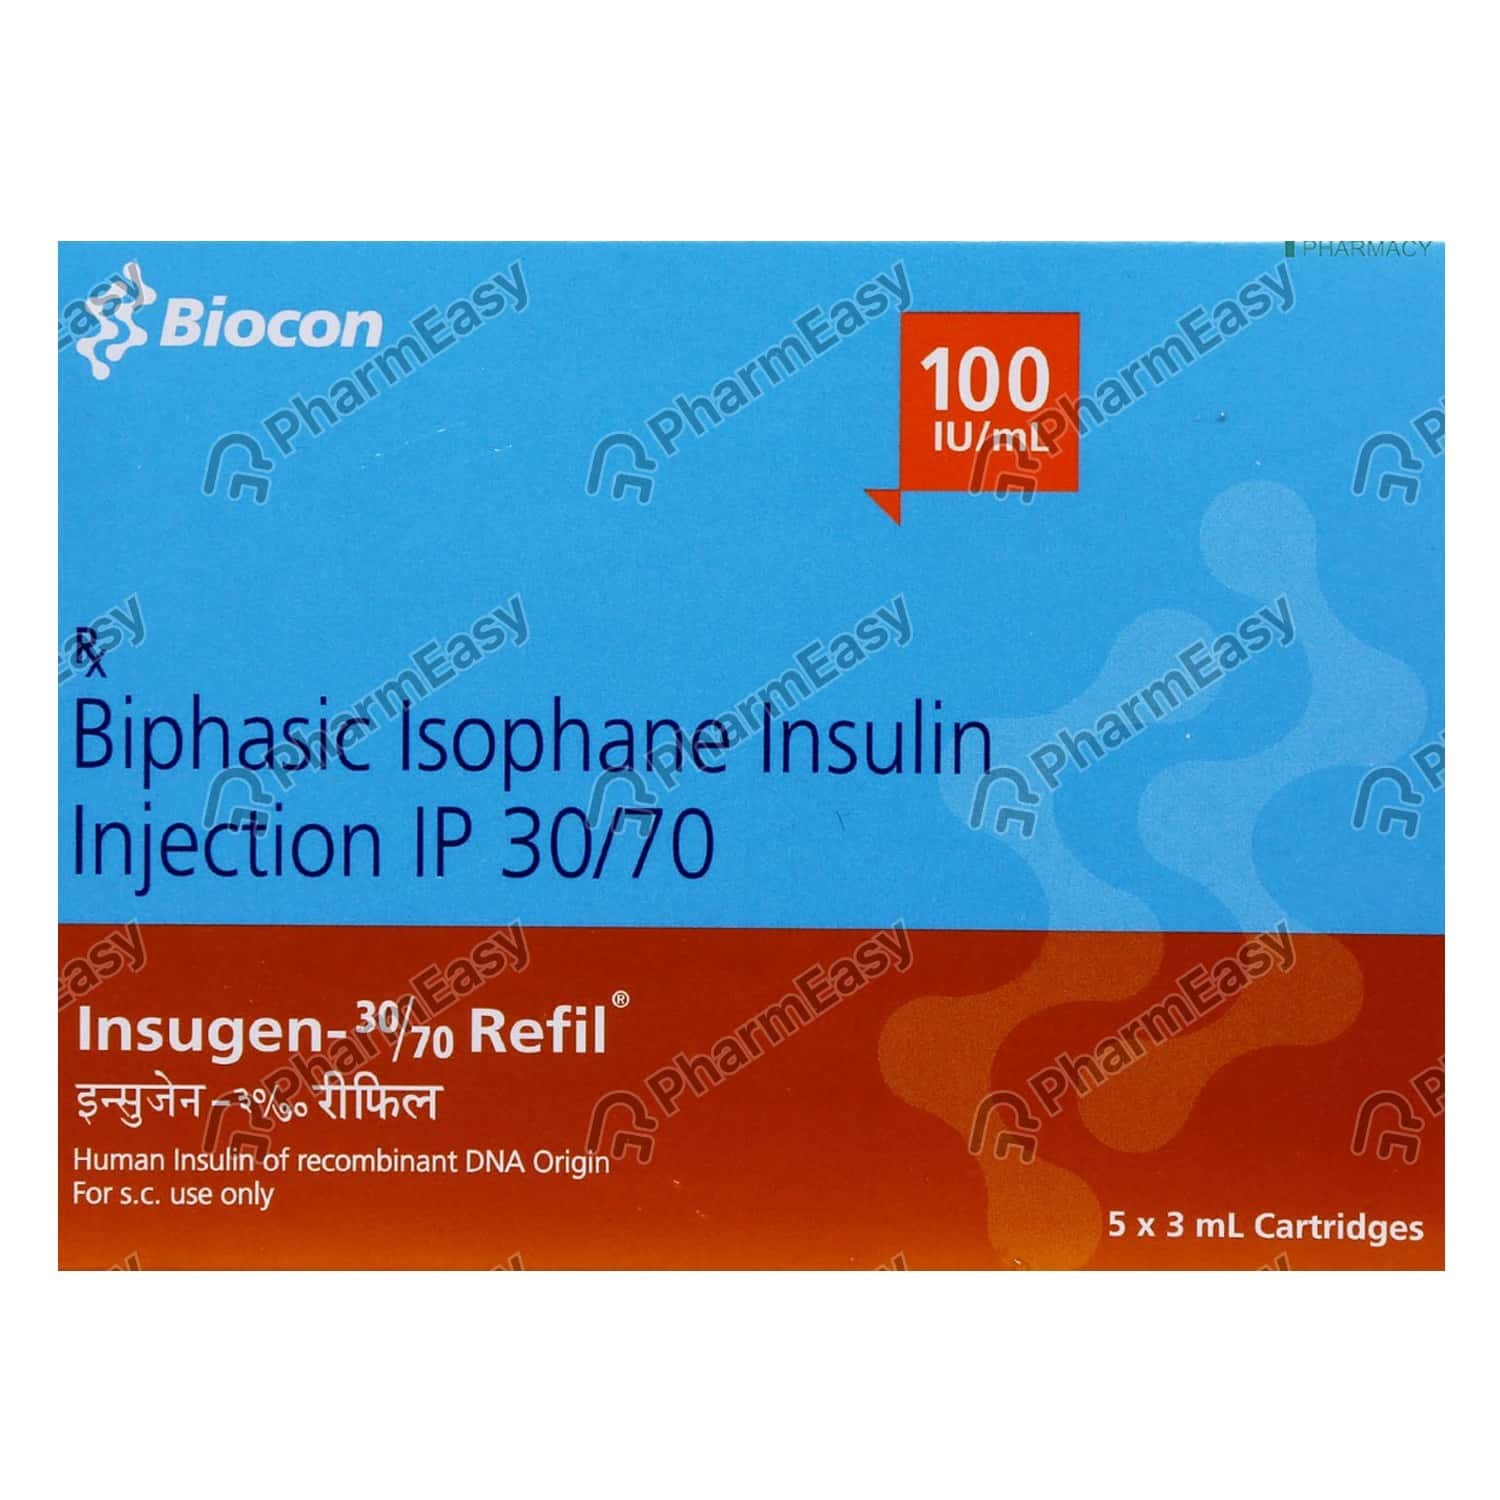 Insugen 30/70 Refill 100iu Cartridge Of 3ml Suspension For Injection